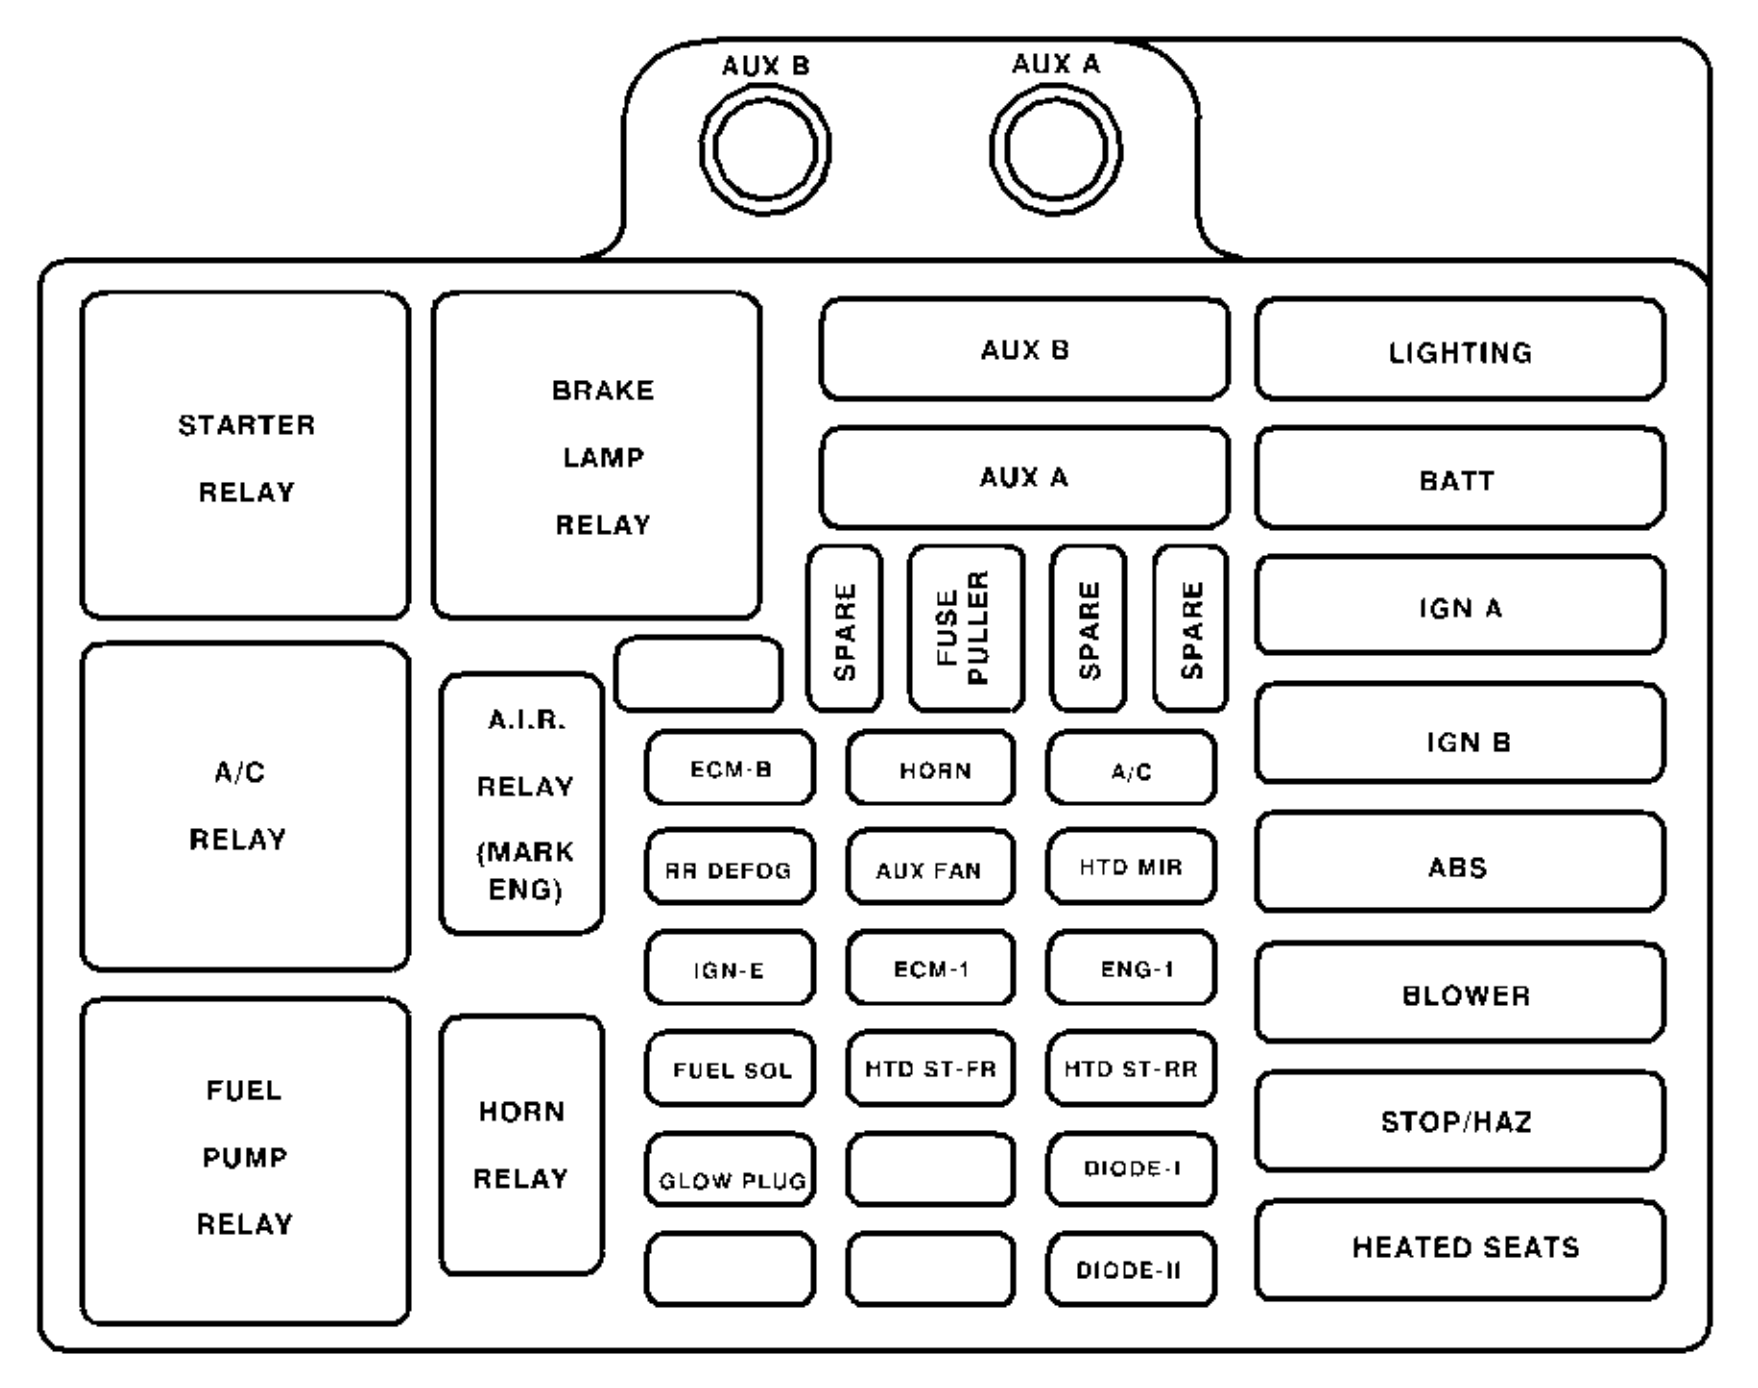 Chevy Optra Fuse Box Free Download Wiring Diagrams Schematics 2001 Chevy Silverado Fuse Box Diagram 03 Silverado Fuse Box Diagram On Tahoe Fuse Box Garage Fuse Box Caterpillar D6 Wiring Diagram 1998 Chevy Fuse Box Diagram Chevy Optra Fuse Box